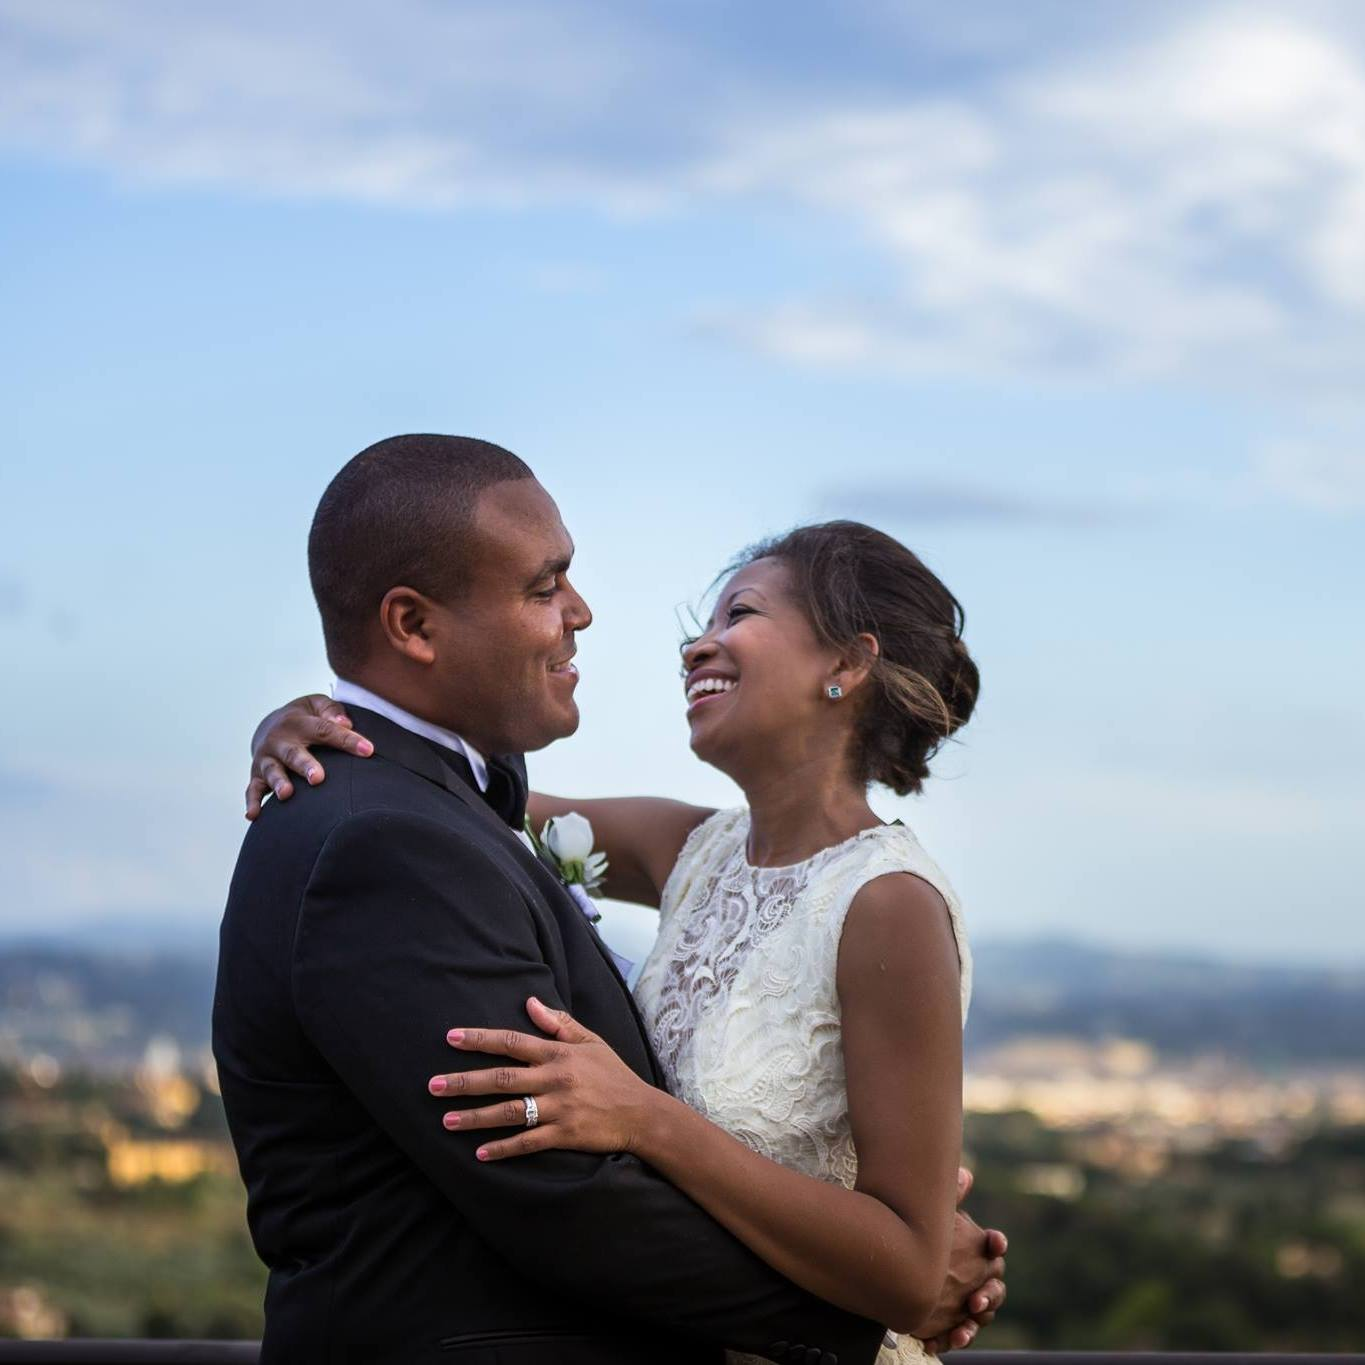 Vow renewal in Tuscany, Italy.(photo cred: Donatella Barbera and Damiano Salvador of D2 Photography)